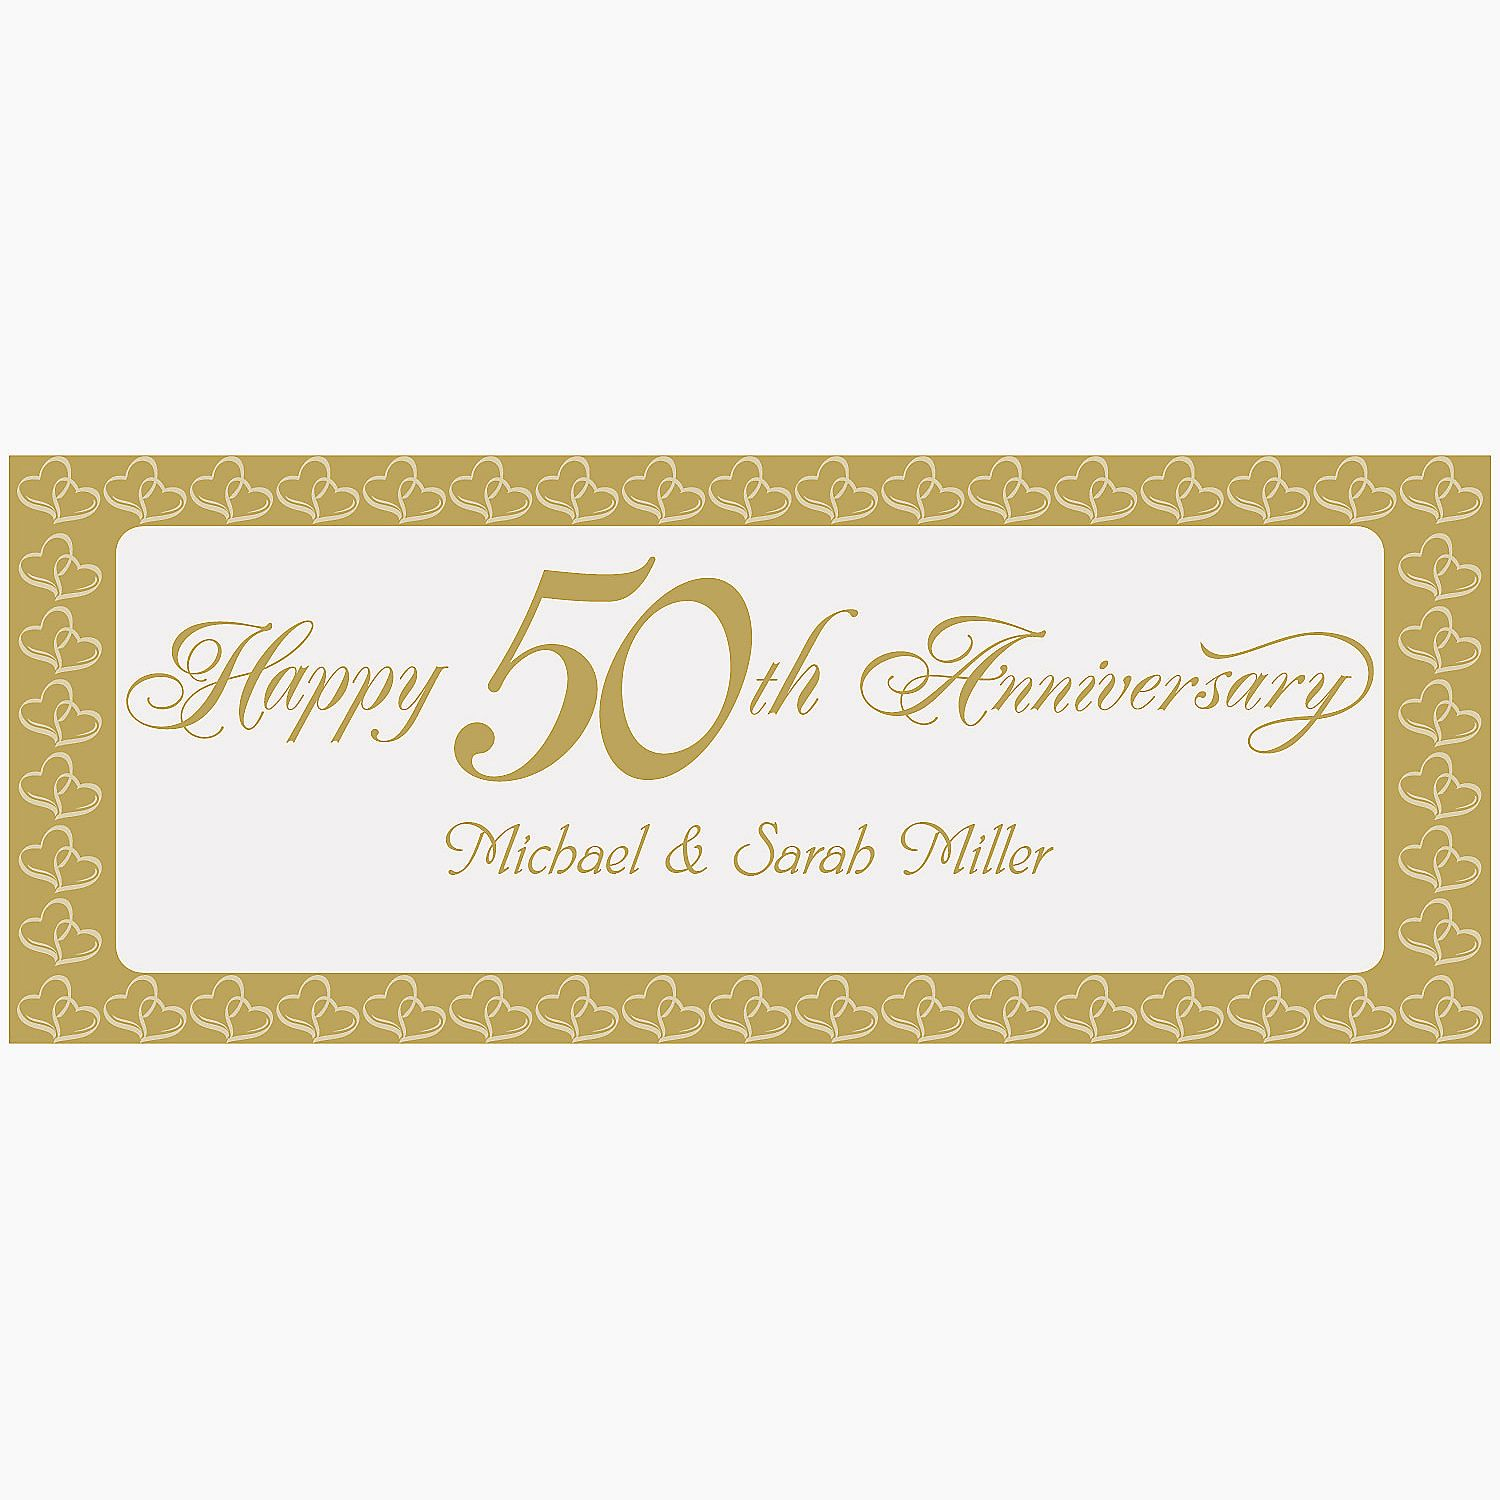 Personalized two hearts happy th anniversary banner